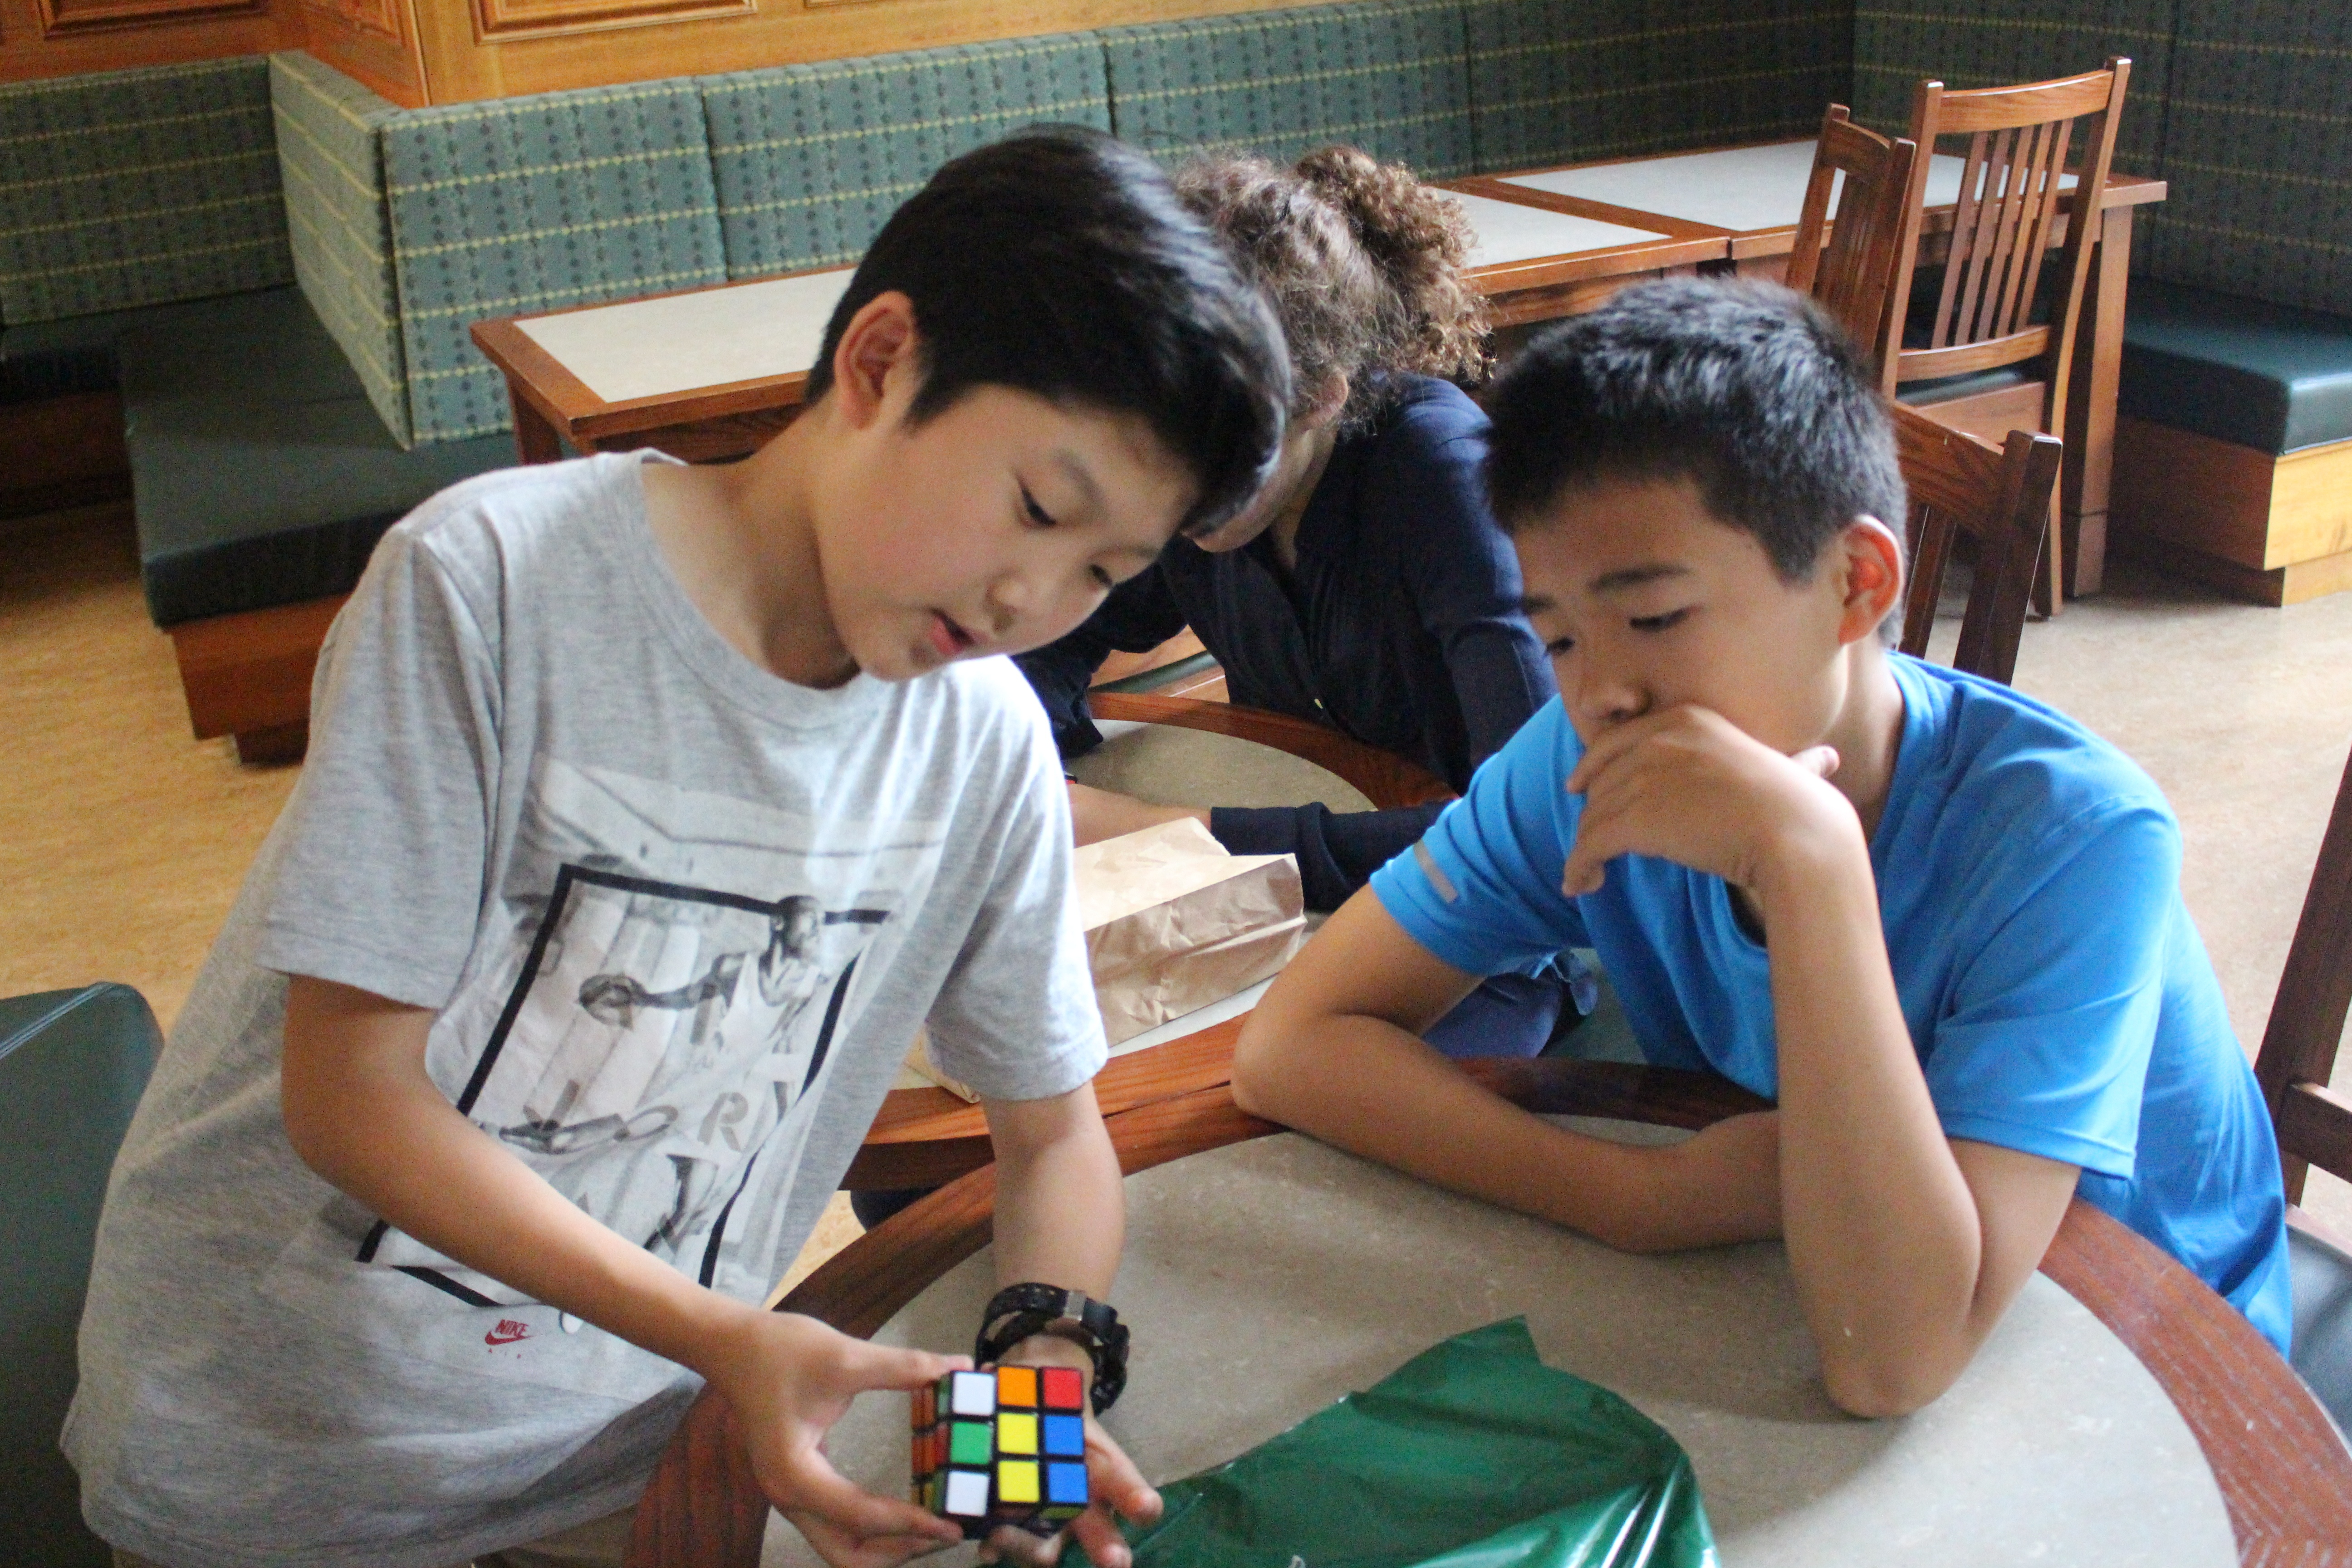 Two seventh graders confer over Rubiks Cube strategy